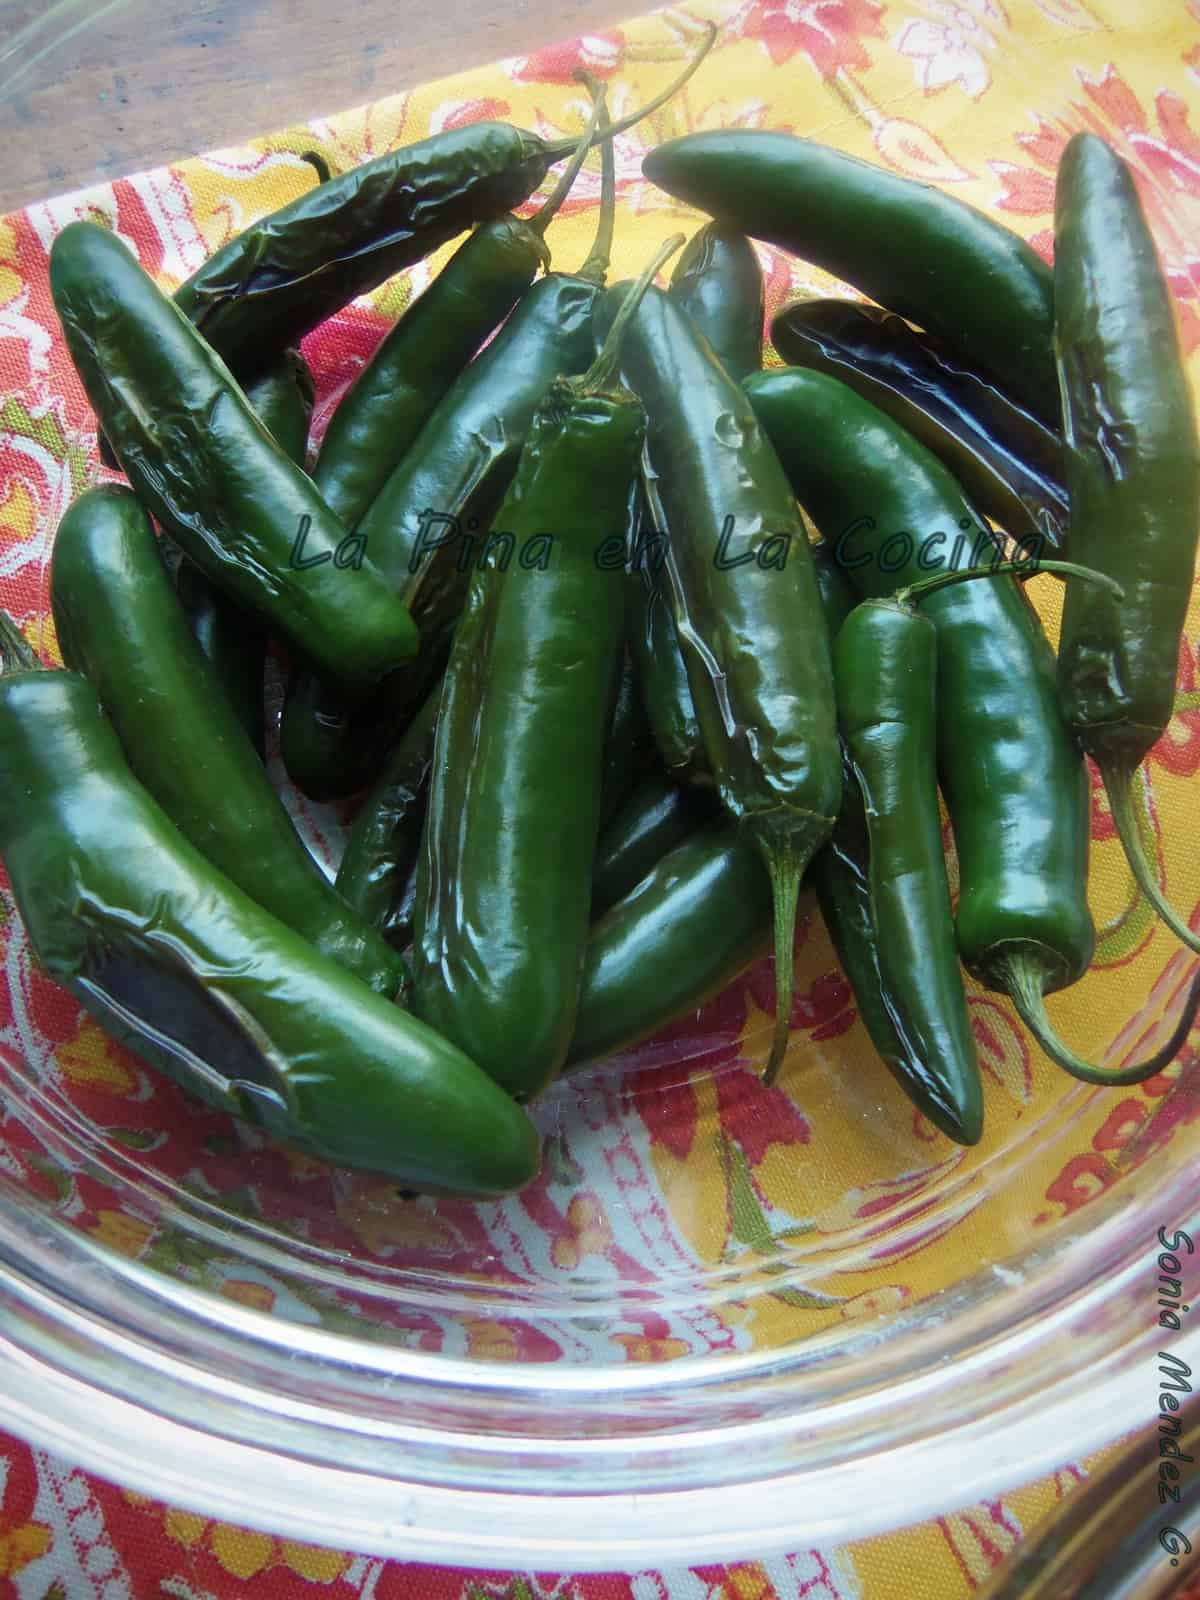 Remove the stems from the peppers before roasting, poaching or grilling. When working with large quantities of peppers, the less you handle them the better.